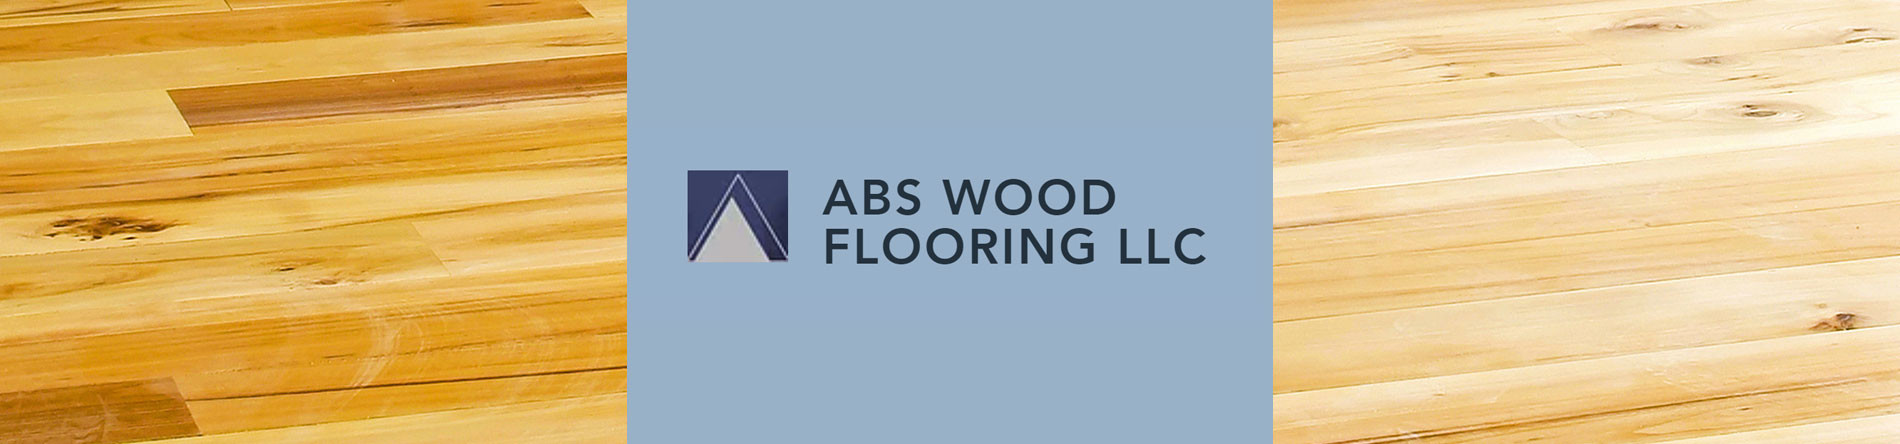 hardwood floor refinishing overland park ks of abs wood flooring is a carpet flooring contractor in kansas city mo in header r2